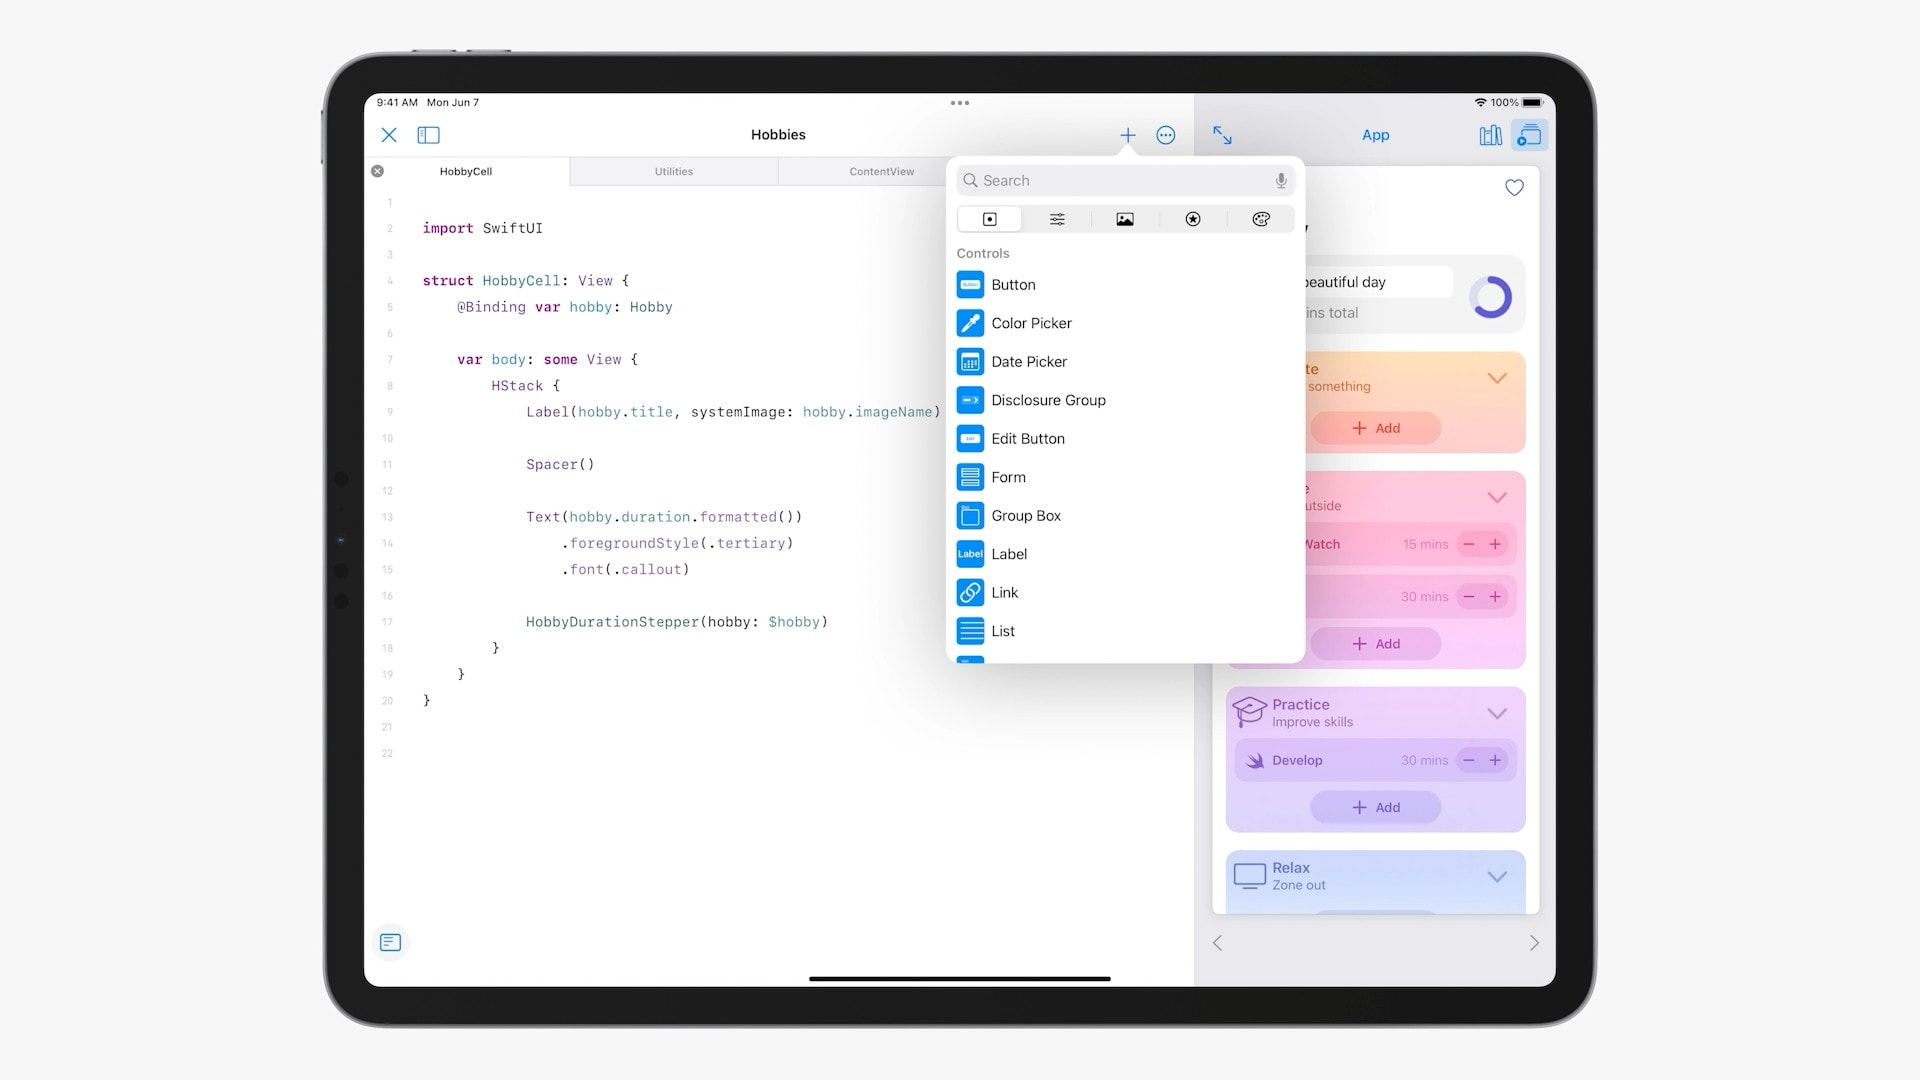 Swift Playgrounds in iPadOS 15